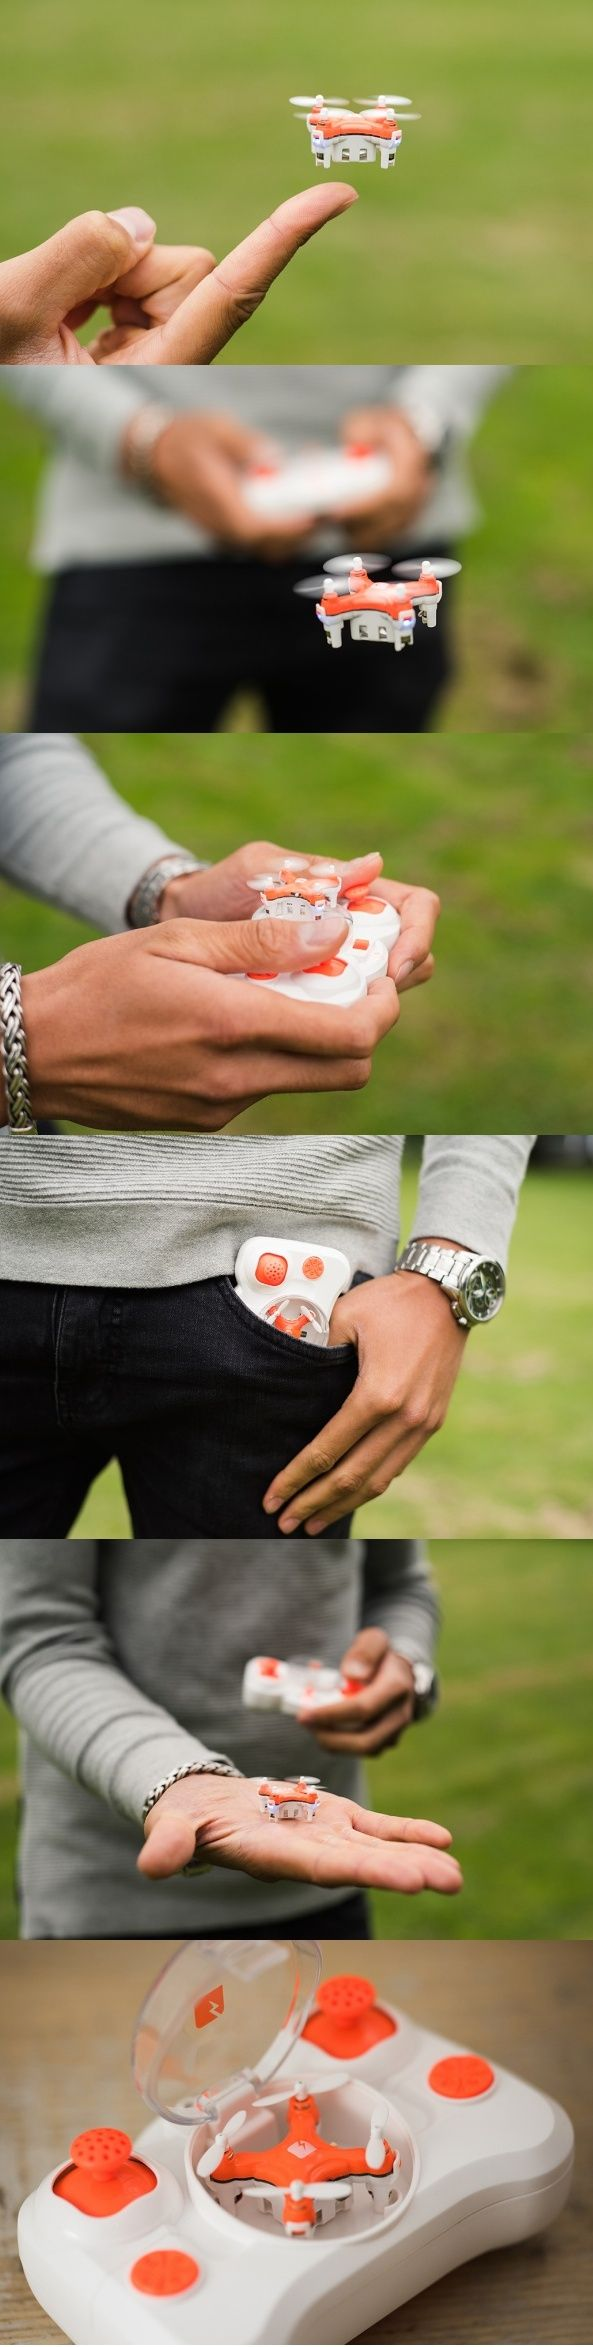 Introducing the teeny tiniest drone EVER! The #SKEYE #Pico Drone is so small, it can easily sit on your finger and fly on precision controlled exercises into the narrowest of nooks! The drone is designed to be taken everywhere and is so small that it even fits inside of its own #controller. #Drone #Technology #Design #YankoDesign